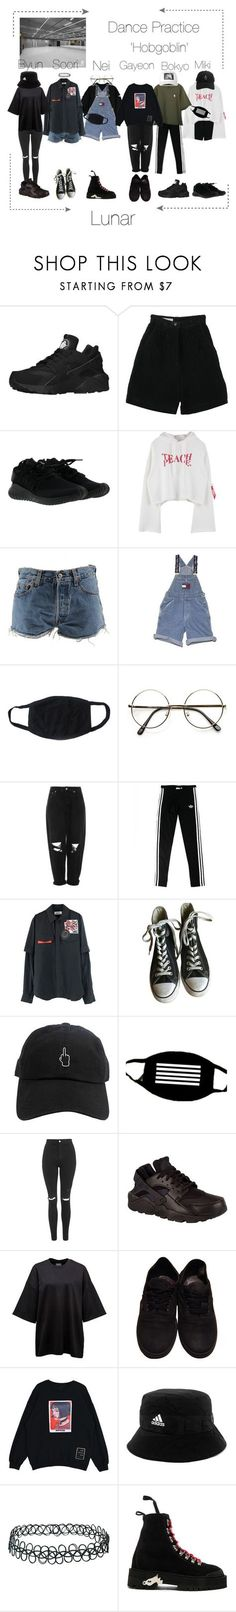 """Lunar 음력 'Hobgoblin' Dance Practice"" by lunar-official ❤️ liked on Polyvore featuring NIKE, Retrò, adidas, Levi's, Ralph Lauren, Boutique, Converse, Topshop, Vans and Off-White"